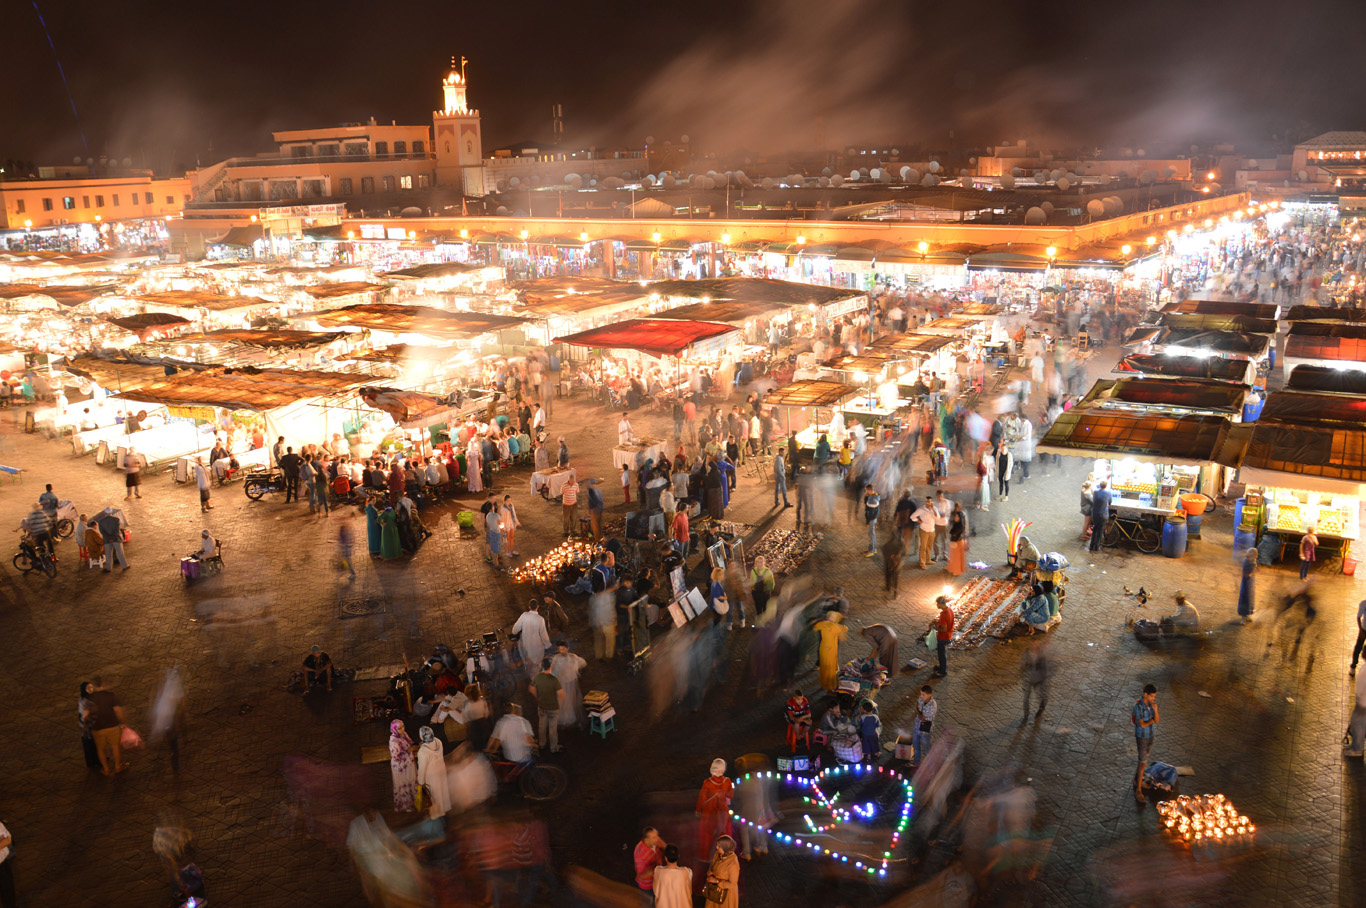 Things to See in Marrakesh - Medina, Palaces and... Scams ...